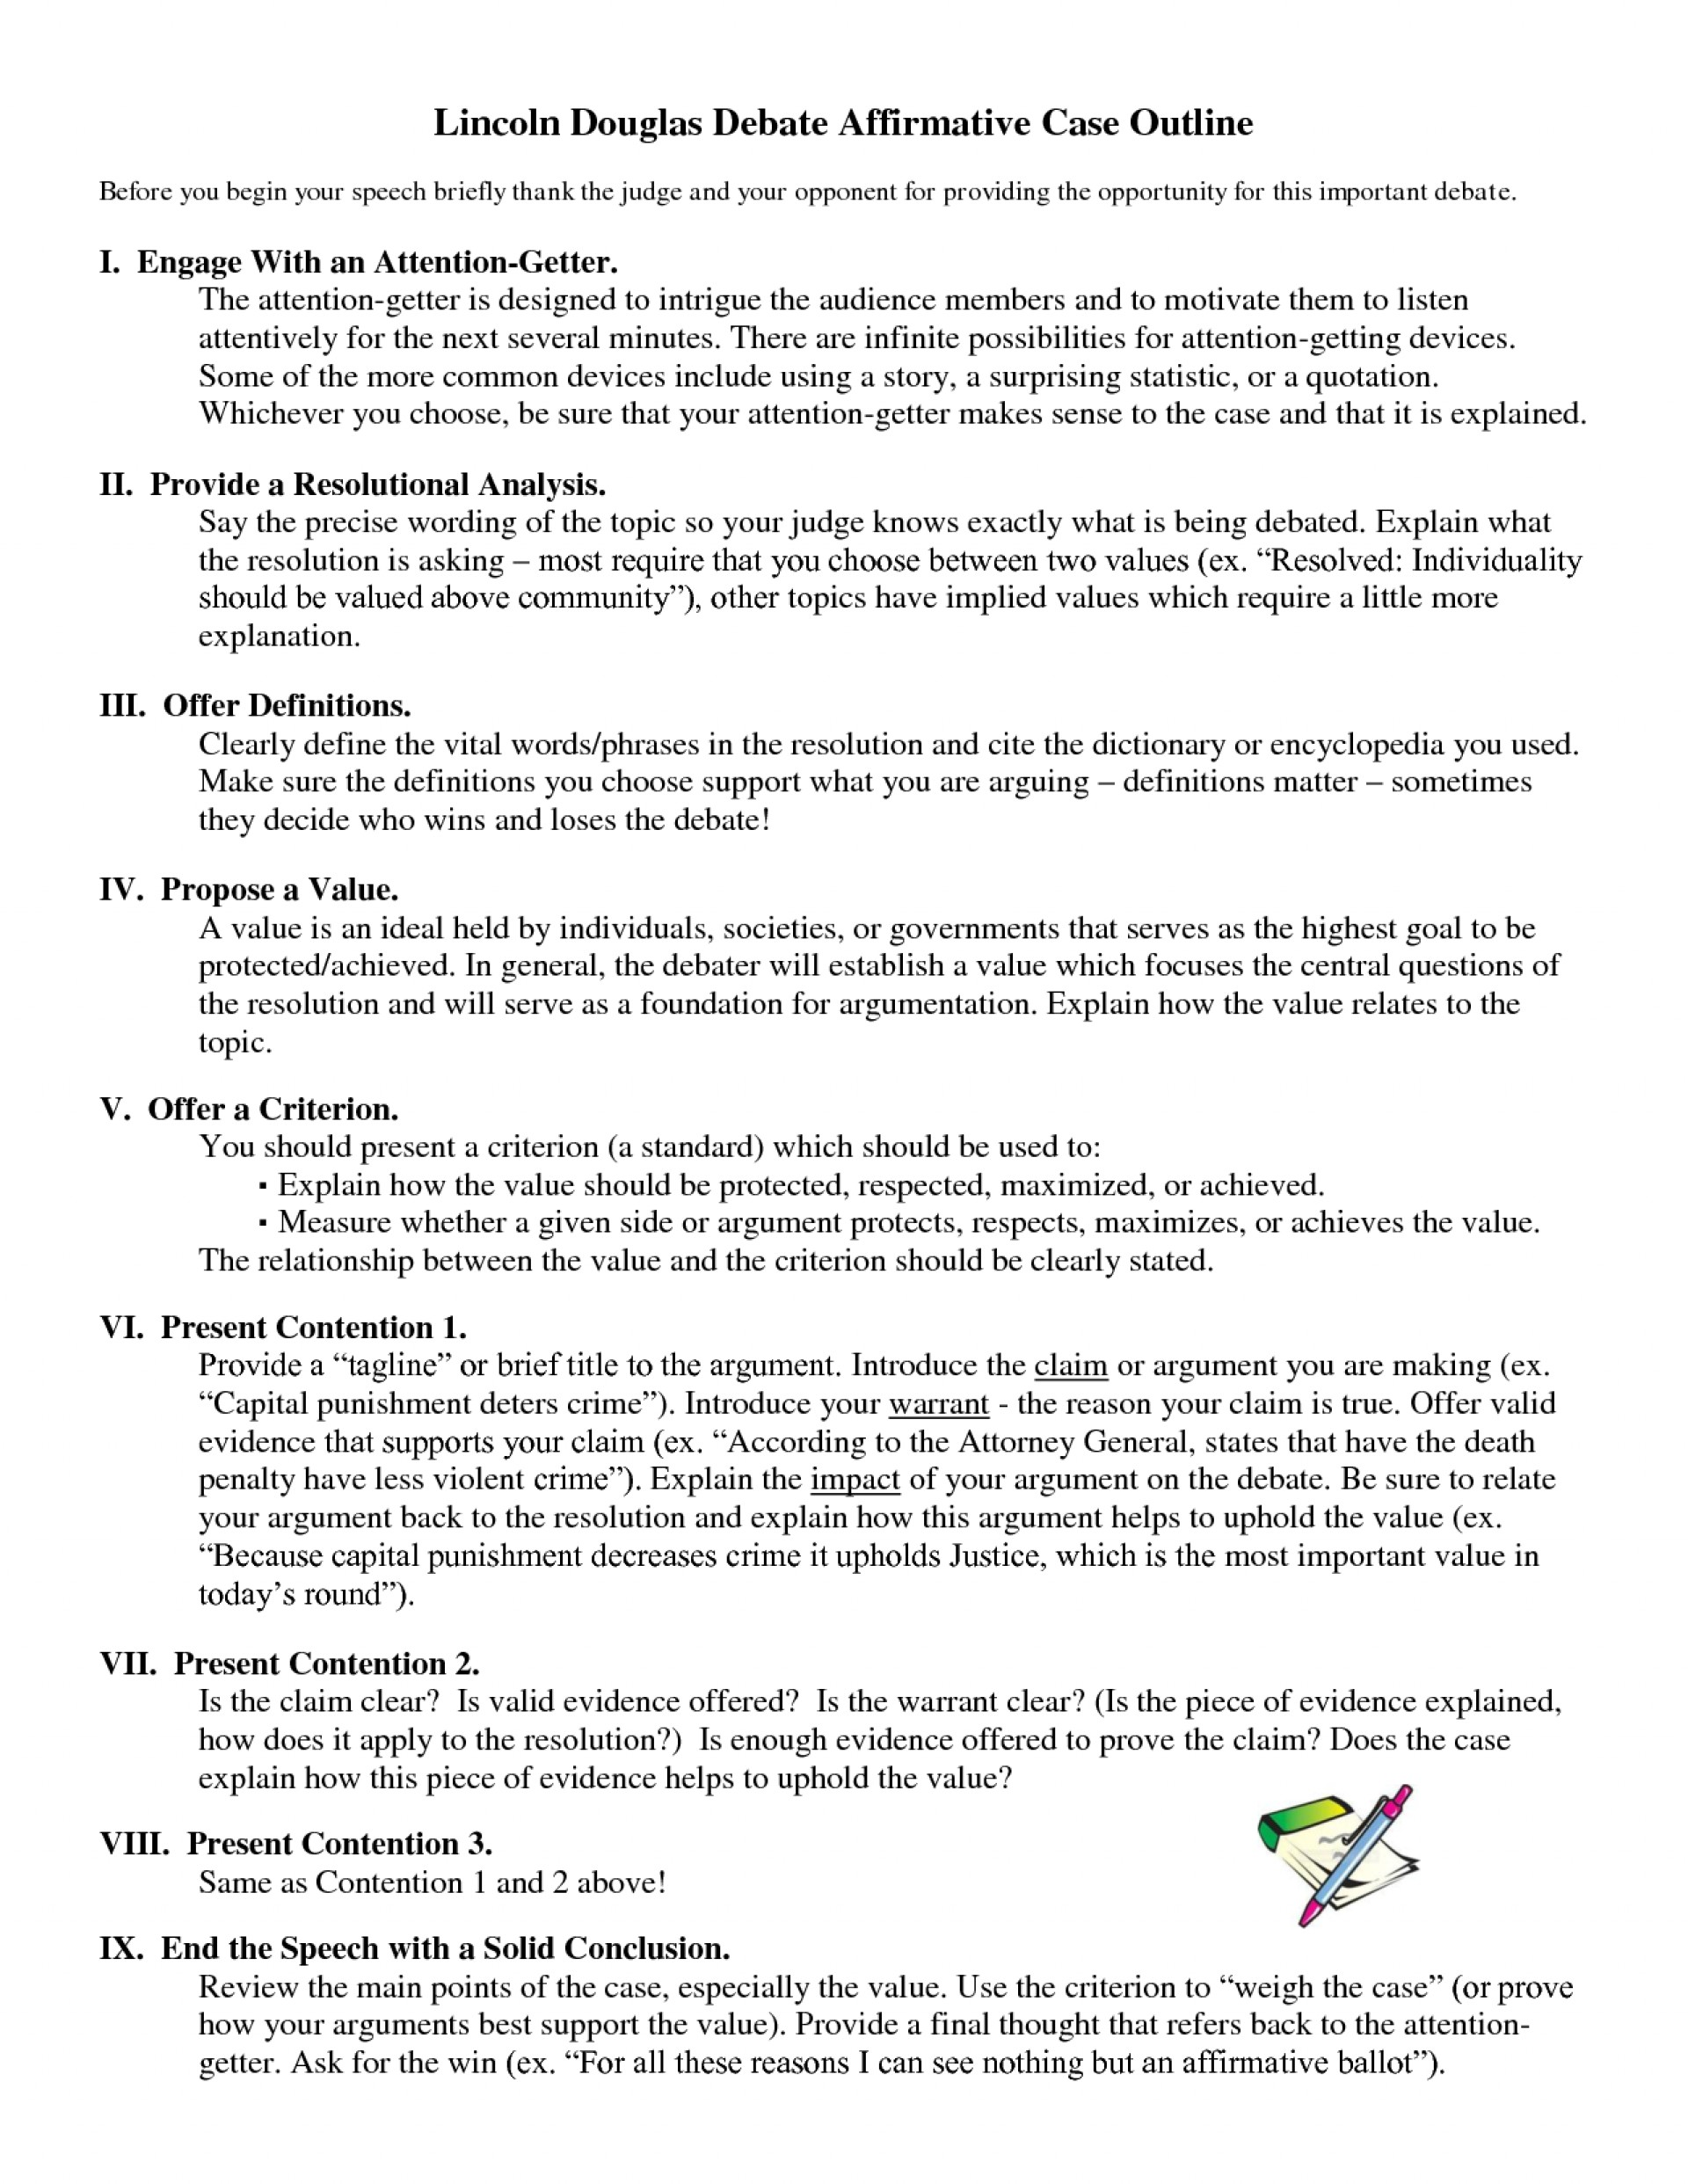 013 Essay Example Lincoln Douglas Affirmative Outline Argumentative On Death Unbelievable Penalty Ideas Persuasive About In The Philippines Pro 1920